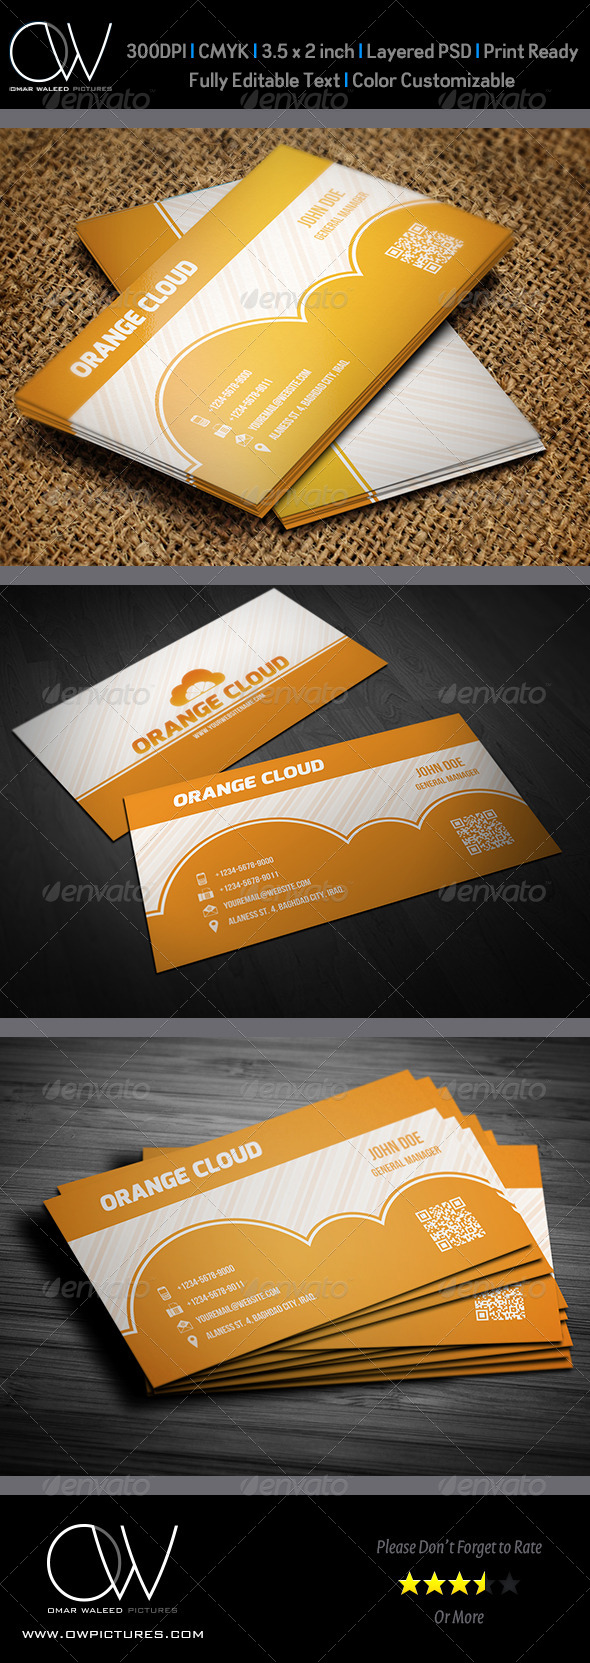 GraphicRiver Orange Cloud Business Card 4637399